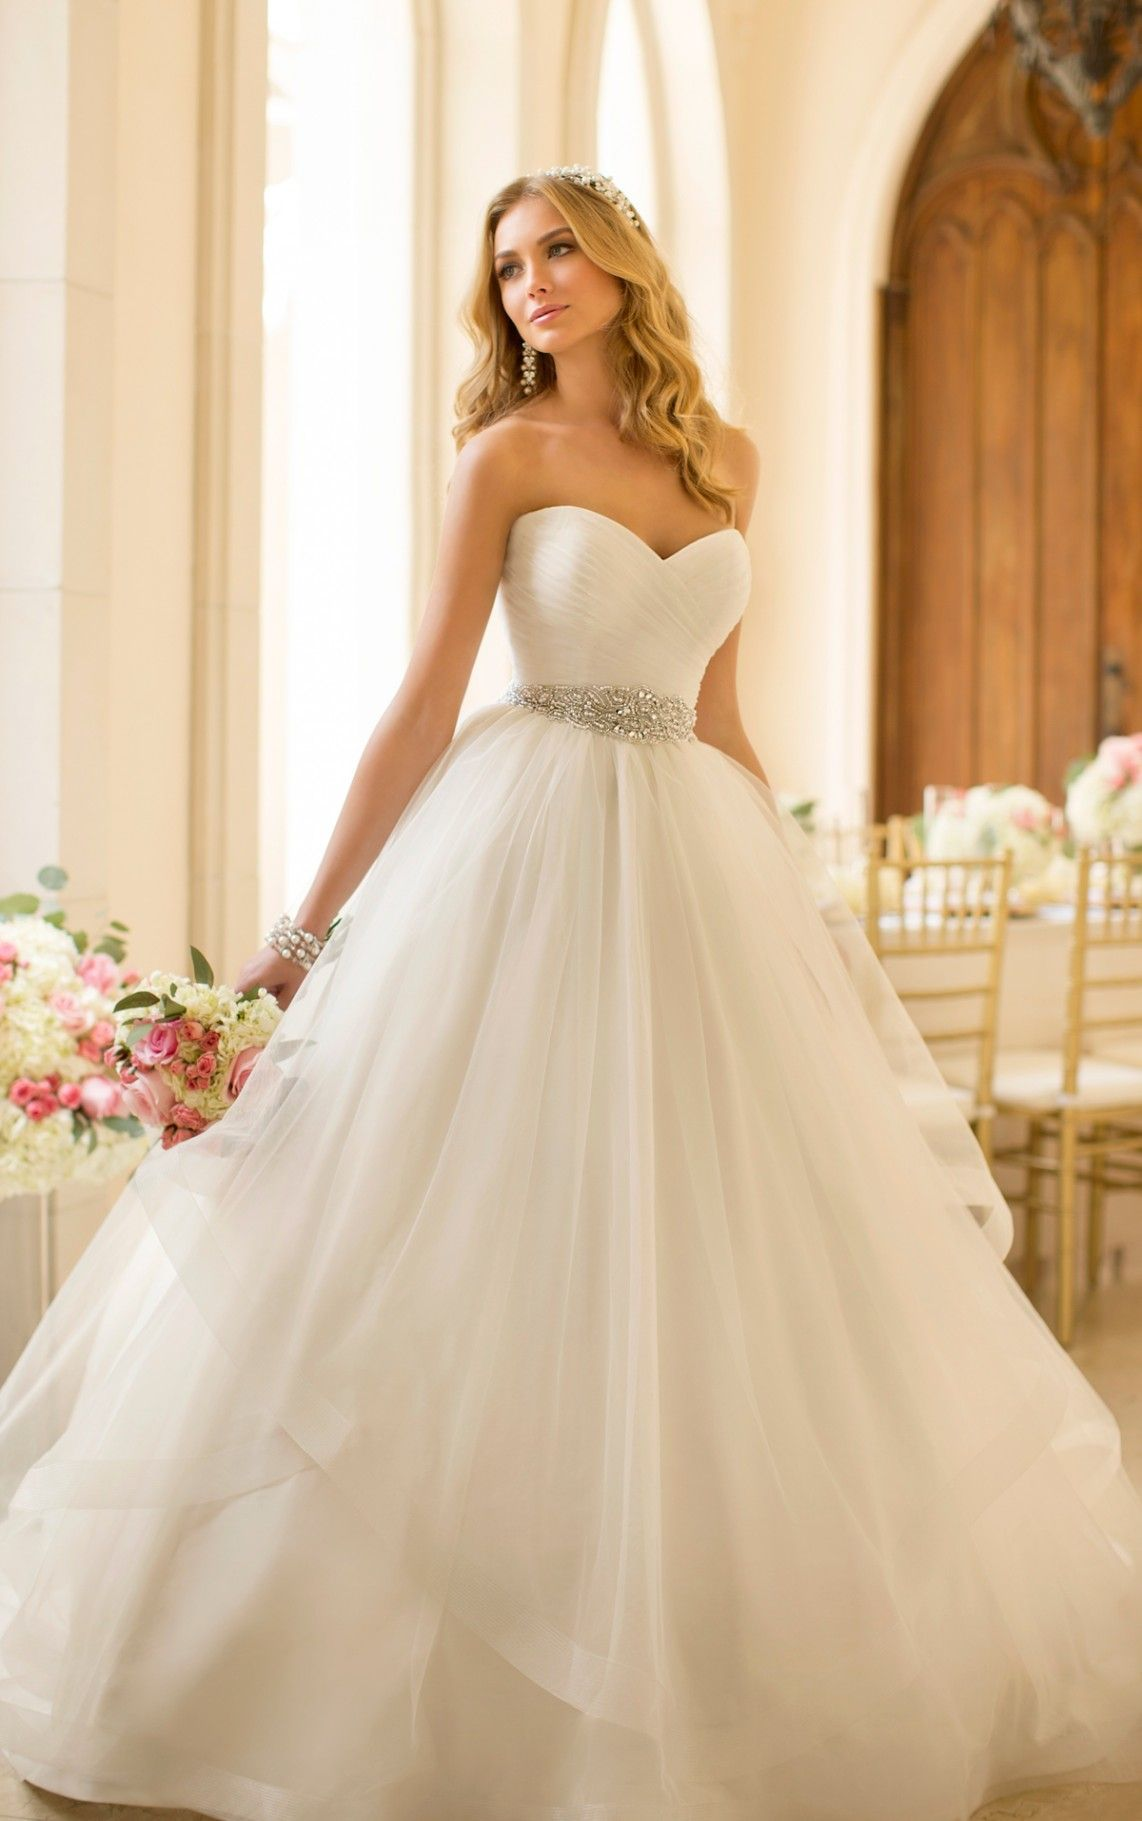 Wedding dress for your body  The Most Flattering Wedding Dresses  randoms  Pinterest  Amelia